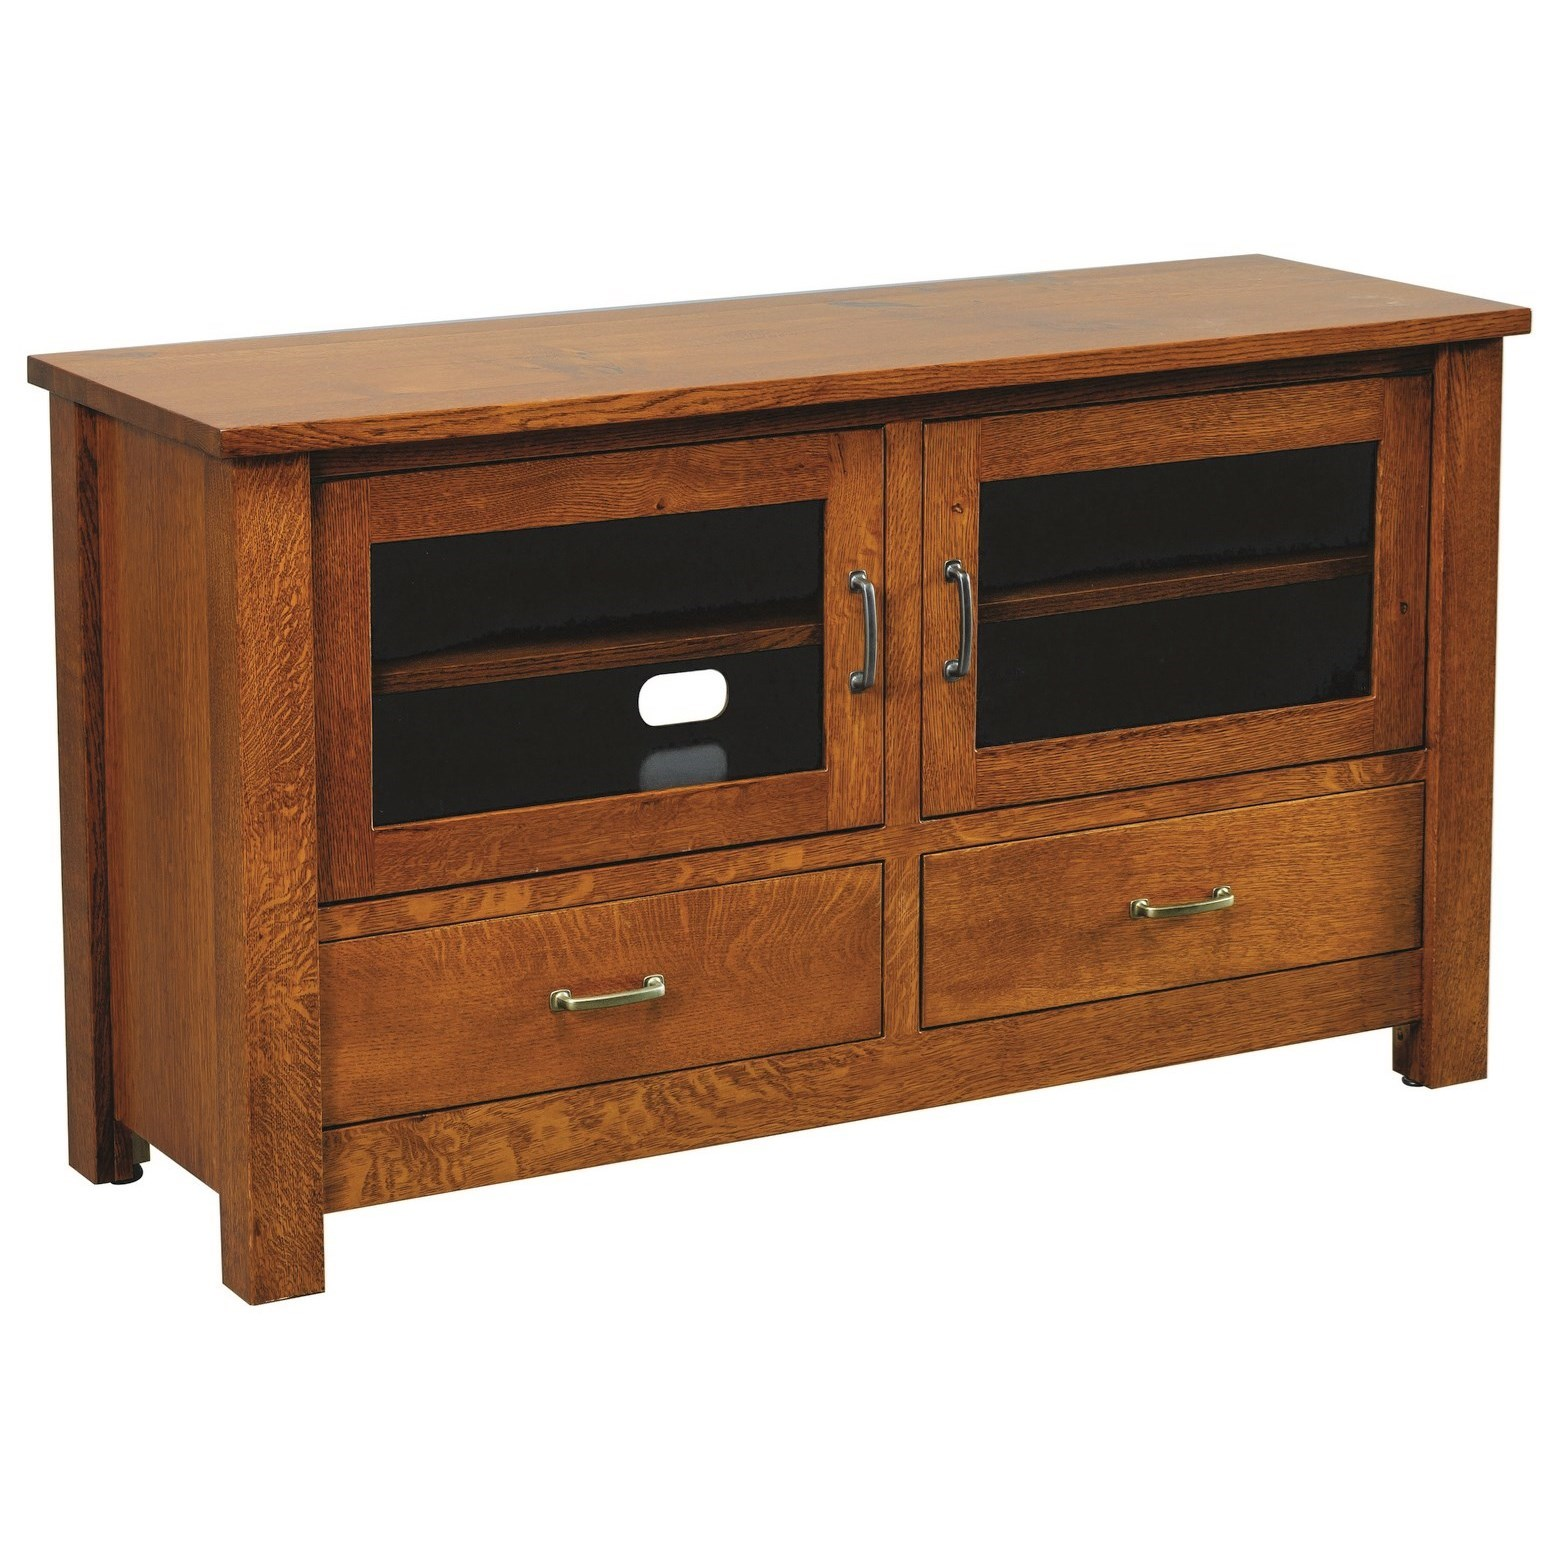 Entertainment Terrance TV Stand by INTEG Wood Products at Saugerties Furniture Mart